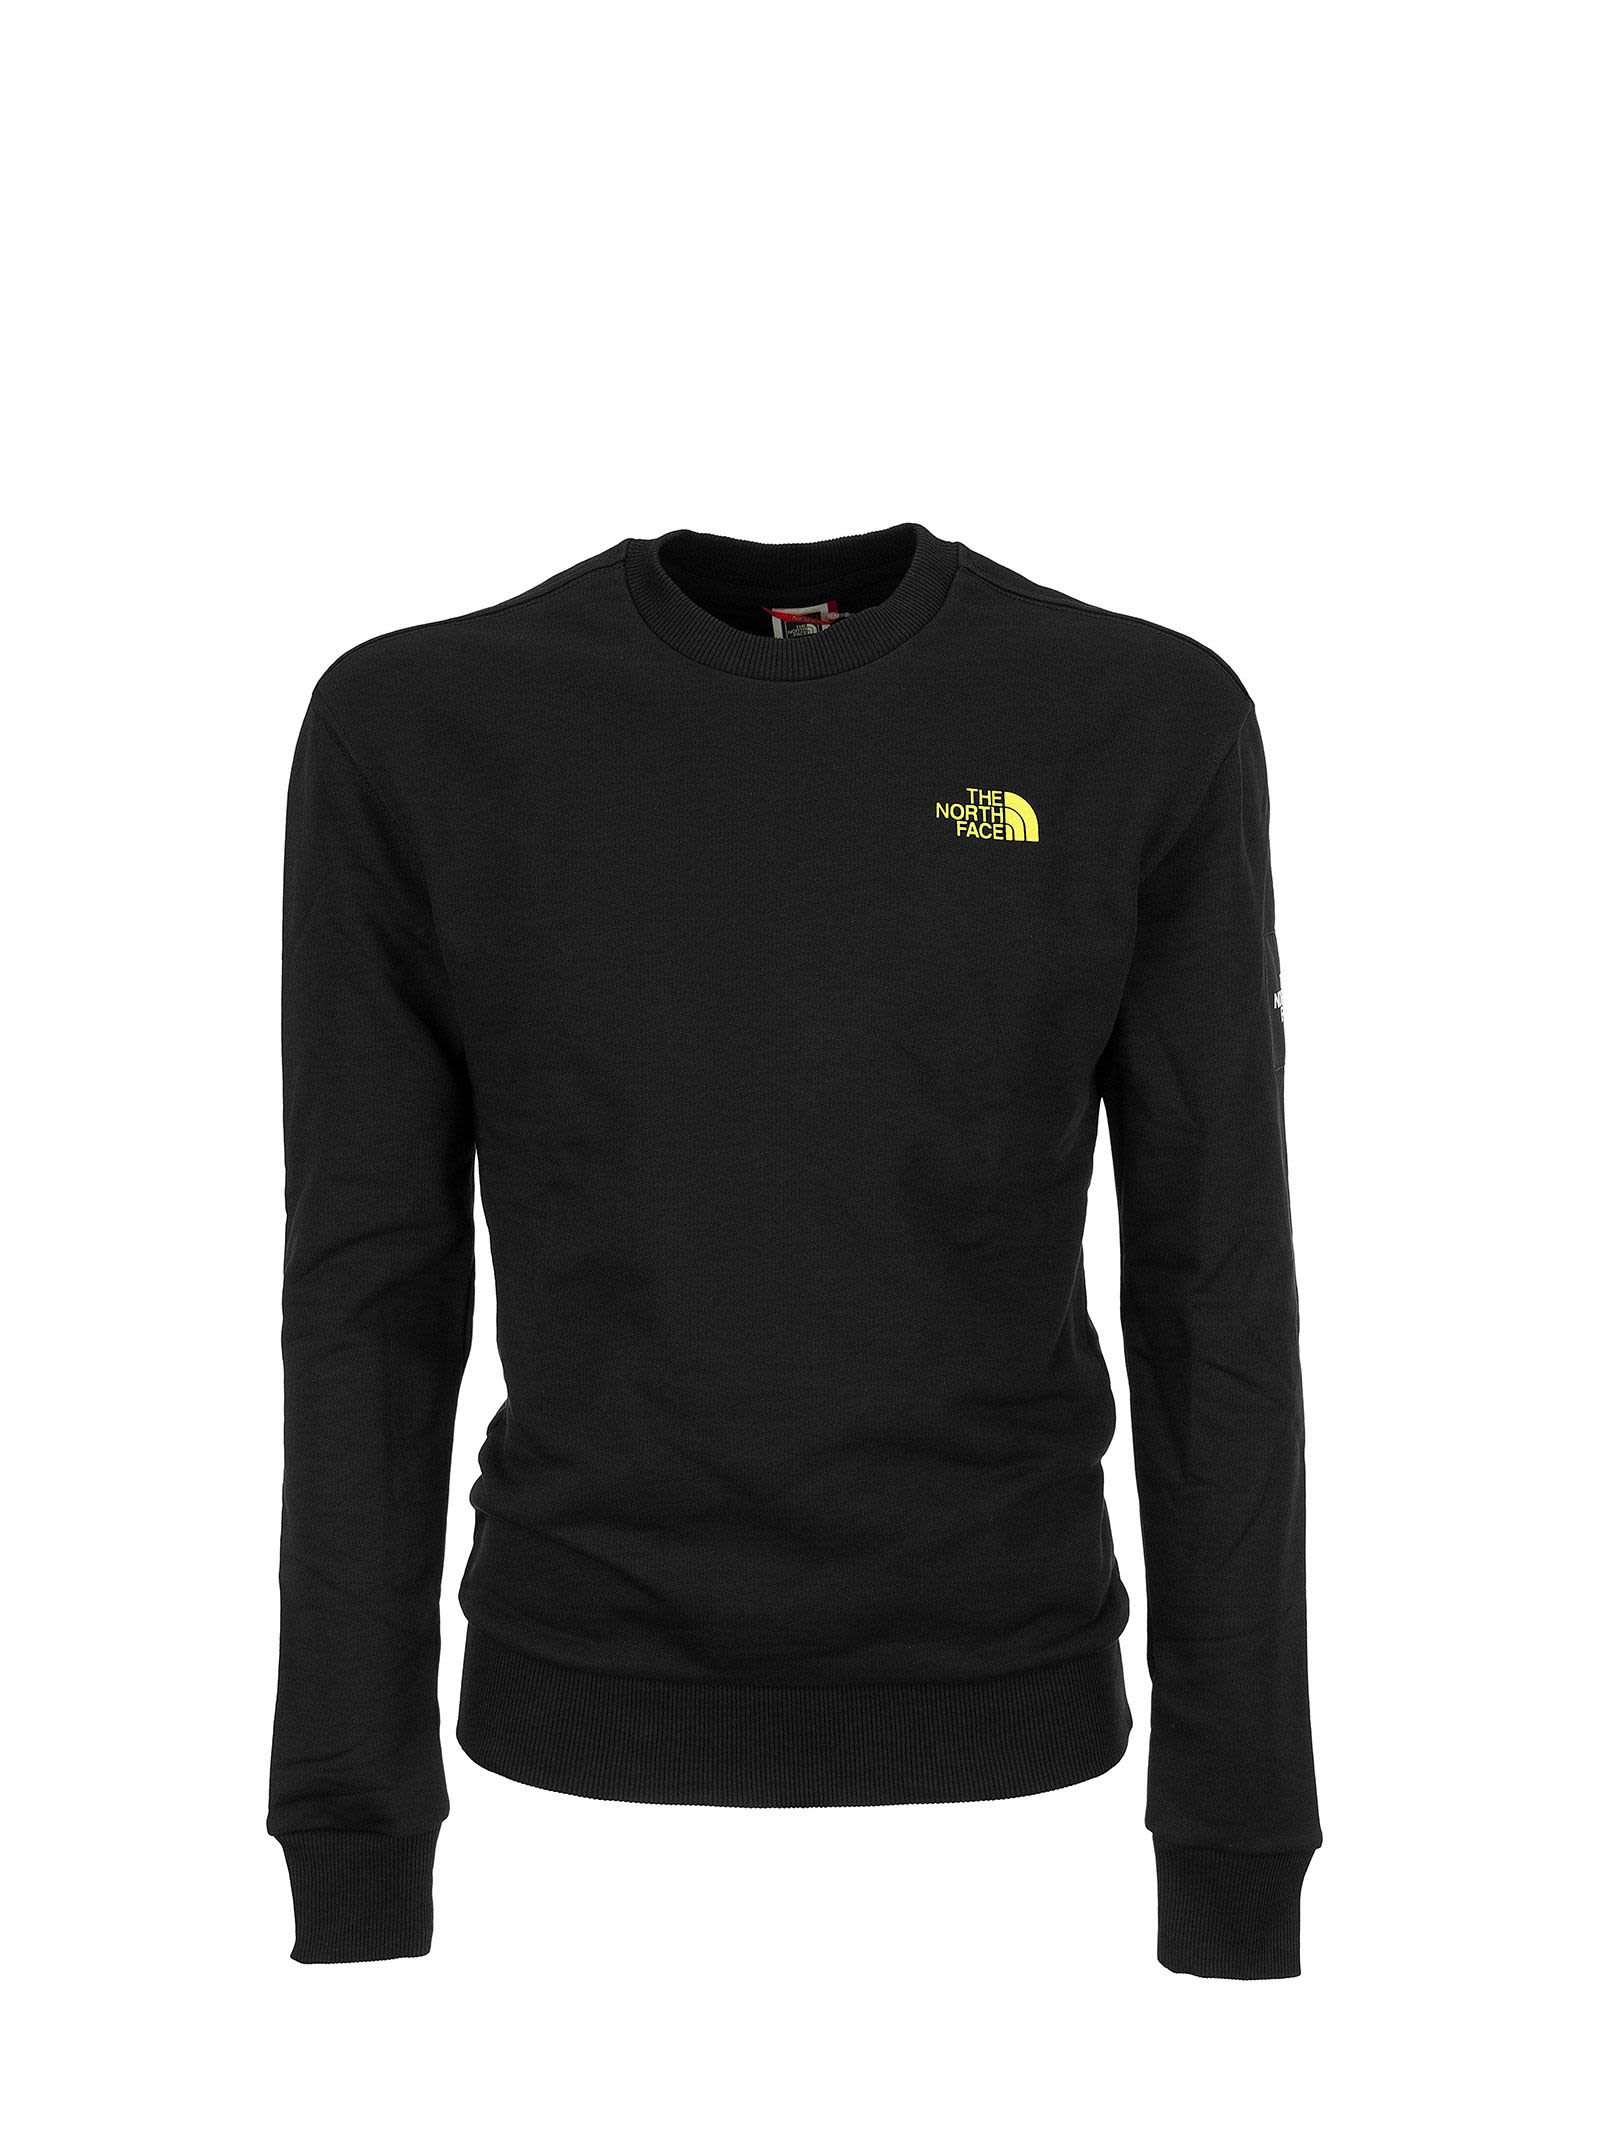 The North Face MENS BLACK BOX SWEATER